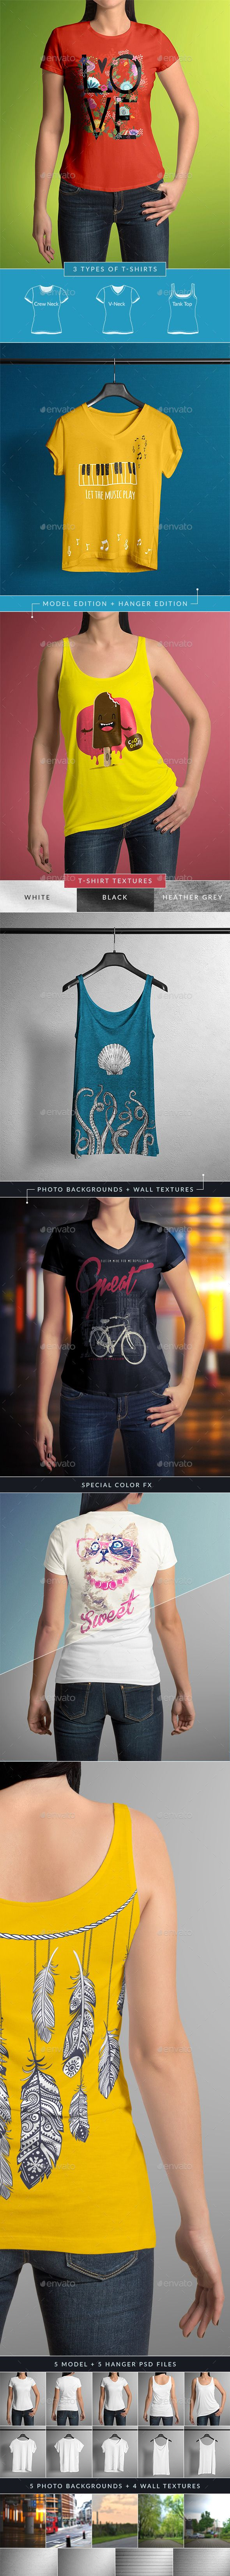 Download T Shirt Mock Up Female Model Classic Edition Clothing Mockup Shirt Mockup Mockup Template Free